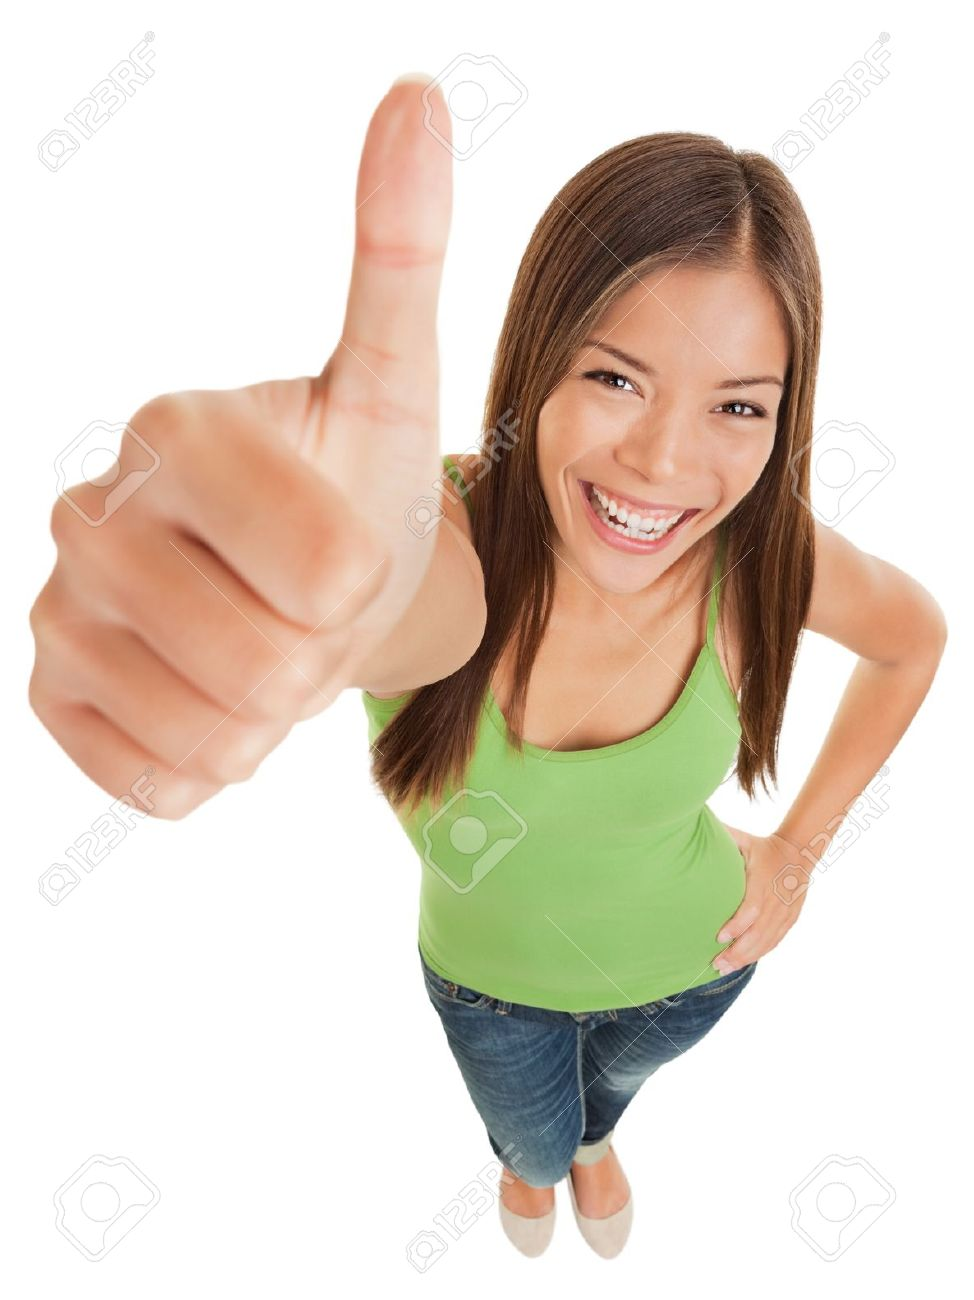 Image result for Asian person thumbs up (pictures)